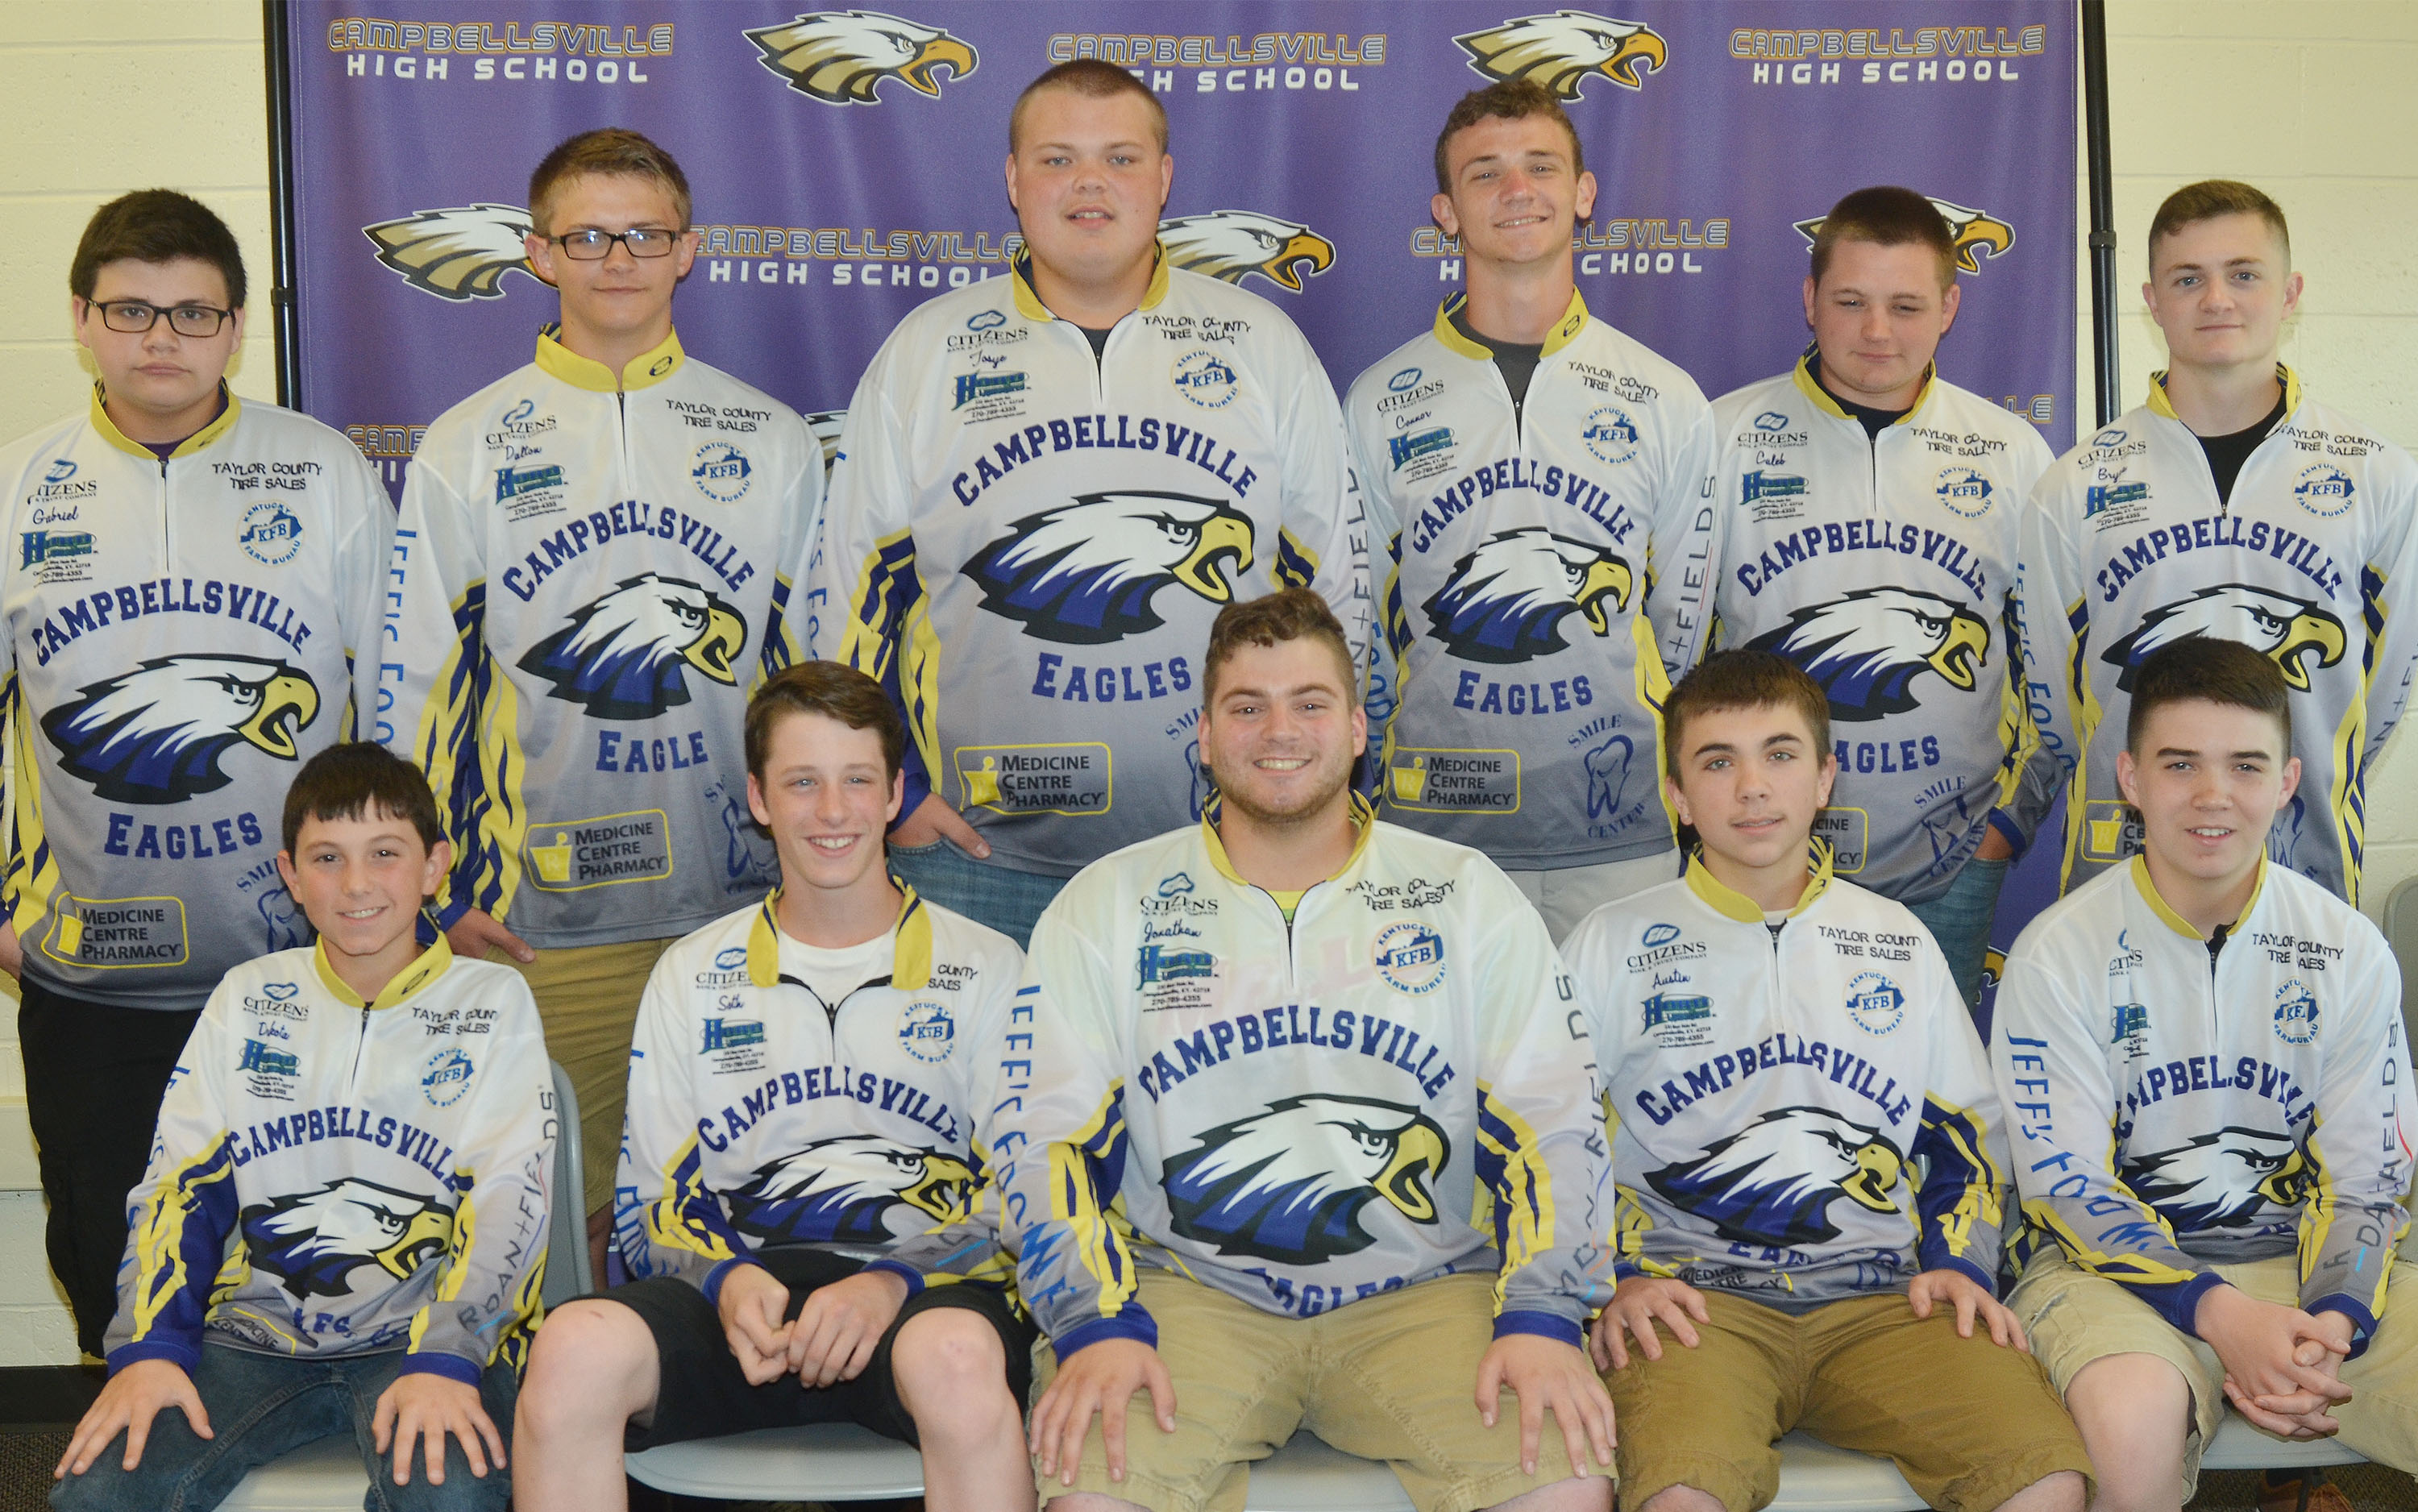 The Campbellsville High School fishing team for the 2016-2017 school year is, from left, front, Campbellsville Middle School seventh-graders Dakota Harris and Seth Hash, CHS senior Jon Tanner Coppage, junior Austin Carter and freshman Cole Kidwell. Back, freshmen Gabriel Gutierrez and Dalton Brown and juniors Tosye Cox, Connor Wilson, Caleb Hughes and Bryce Richardson.